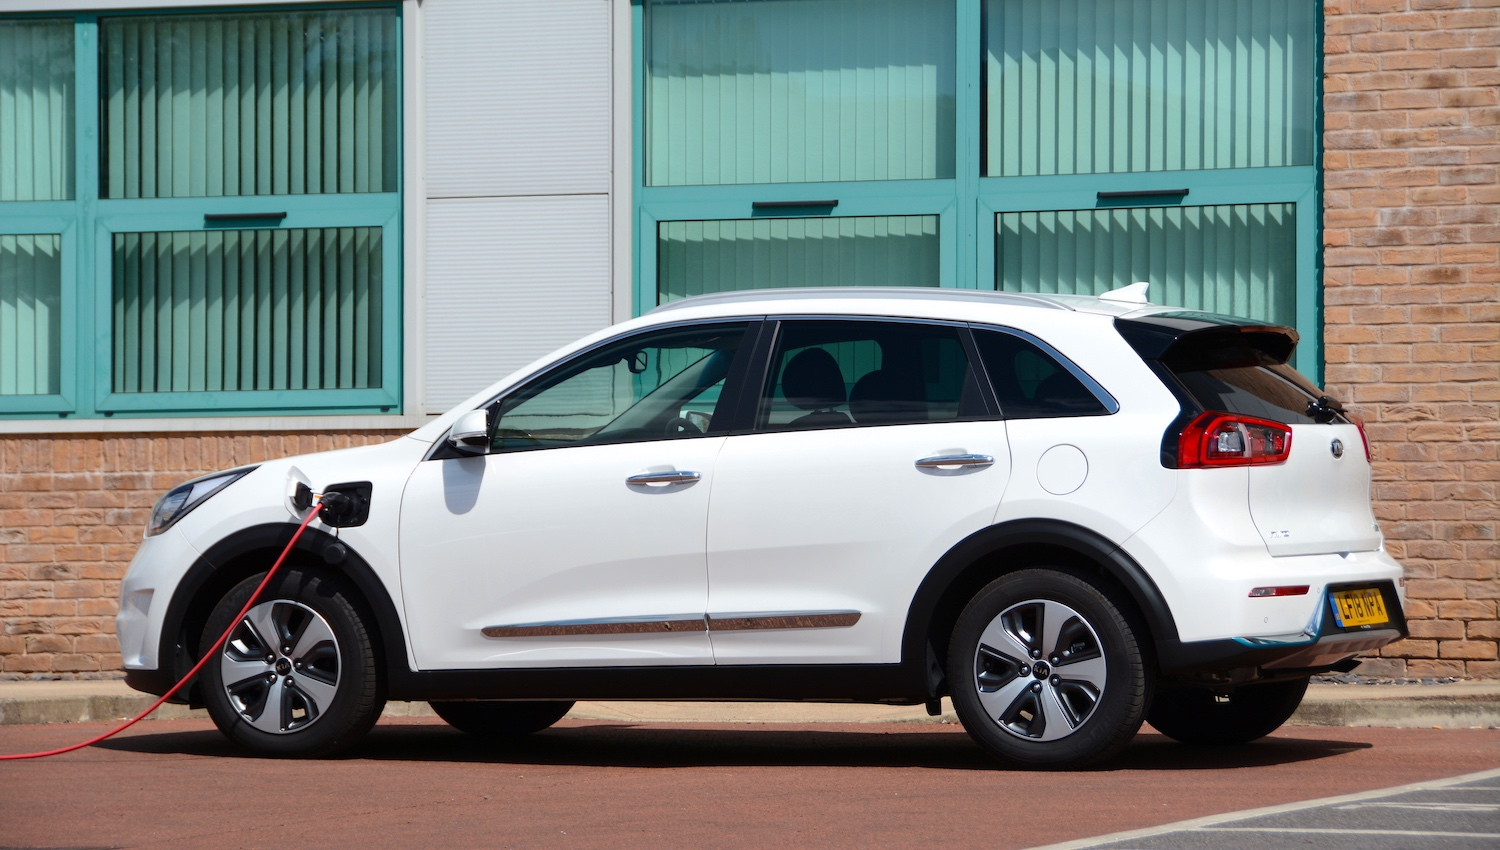 Plug In Hybrid Cars >> Kia Niro Plug-in DCT 6-speed Review - GreenCarGuide.co.uk